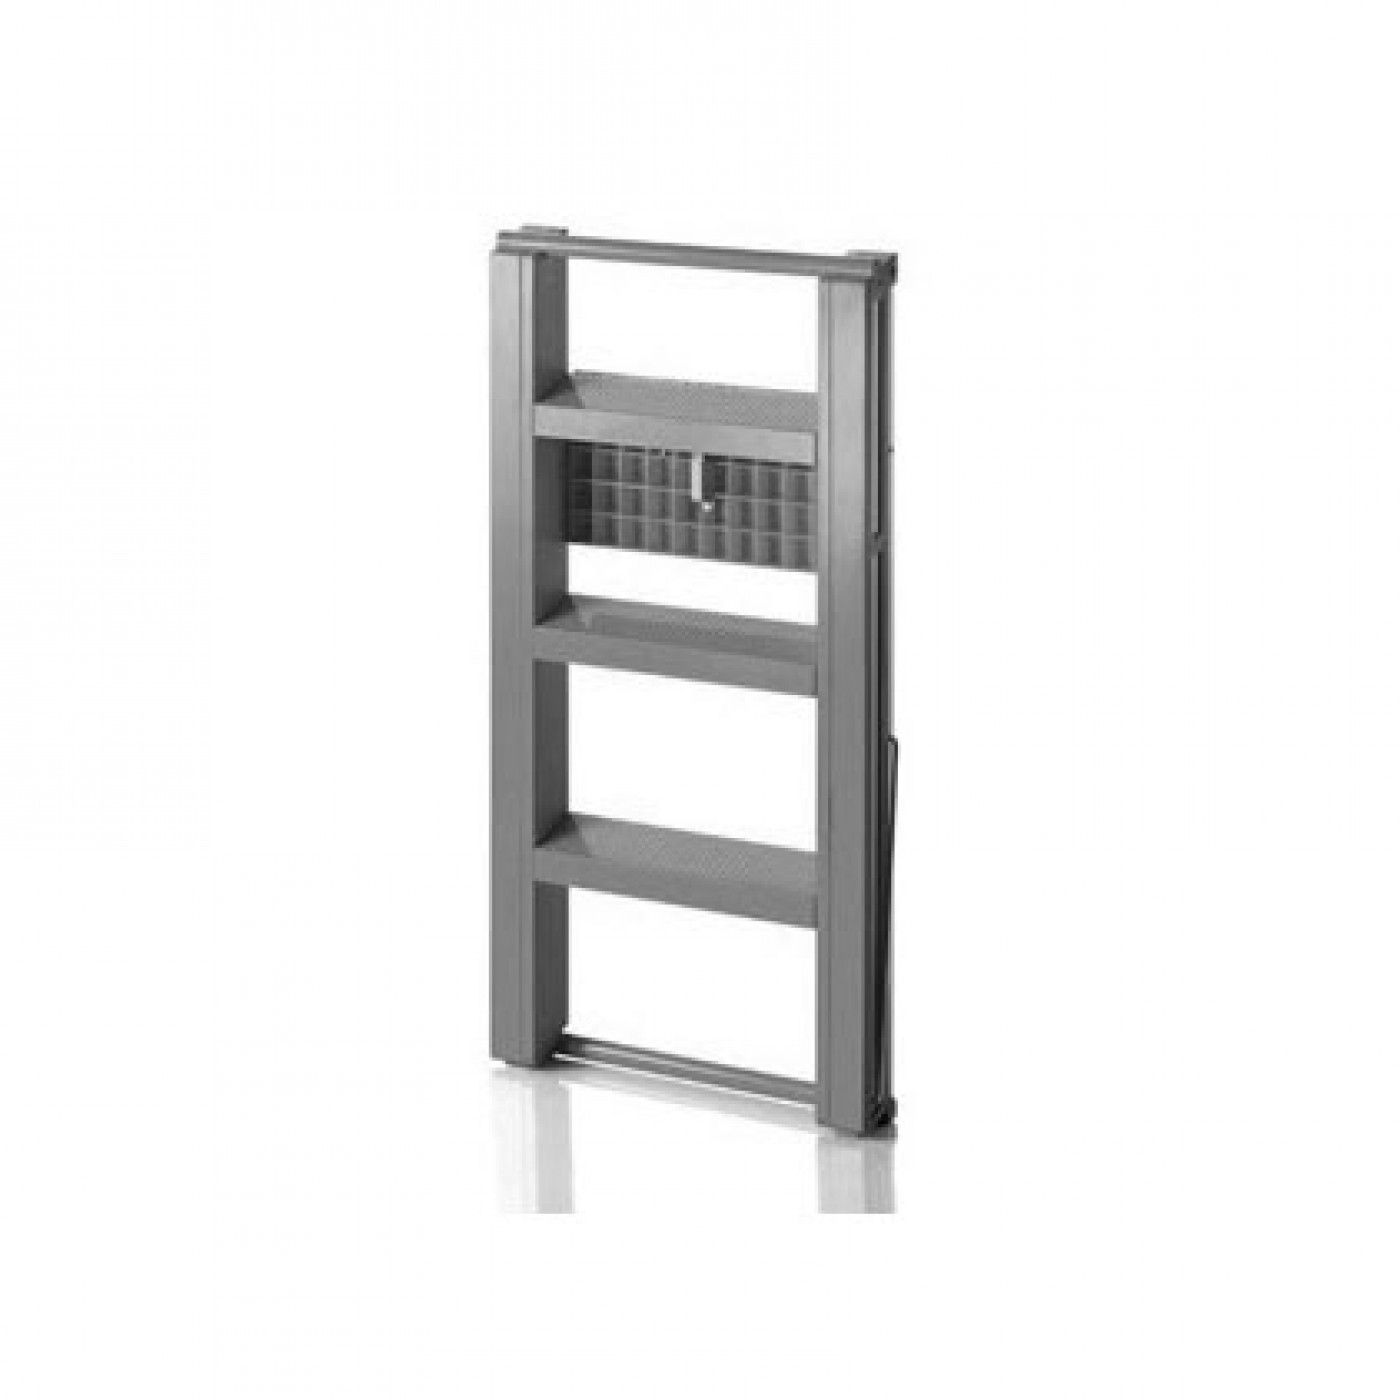 Escabeau Pliant Escabeau Pliant Telescopique En 2019 Deco Folding Ladder